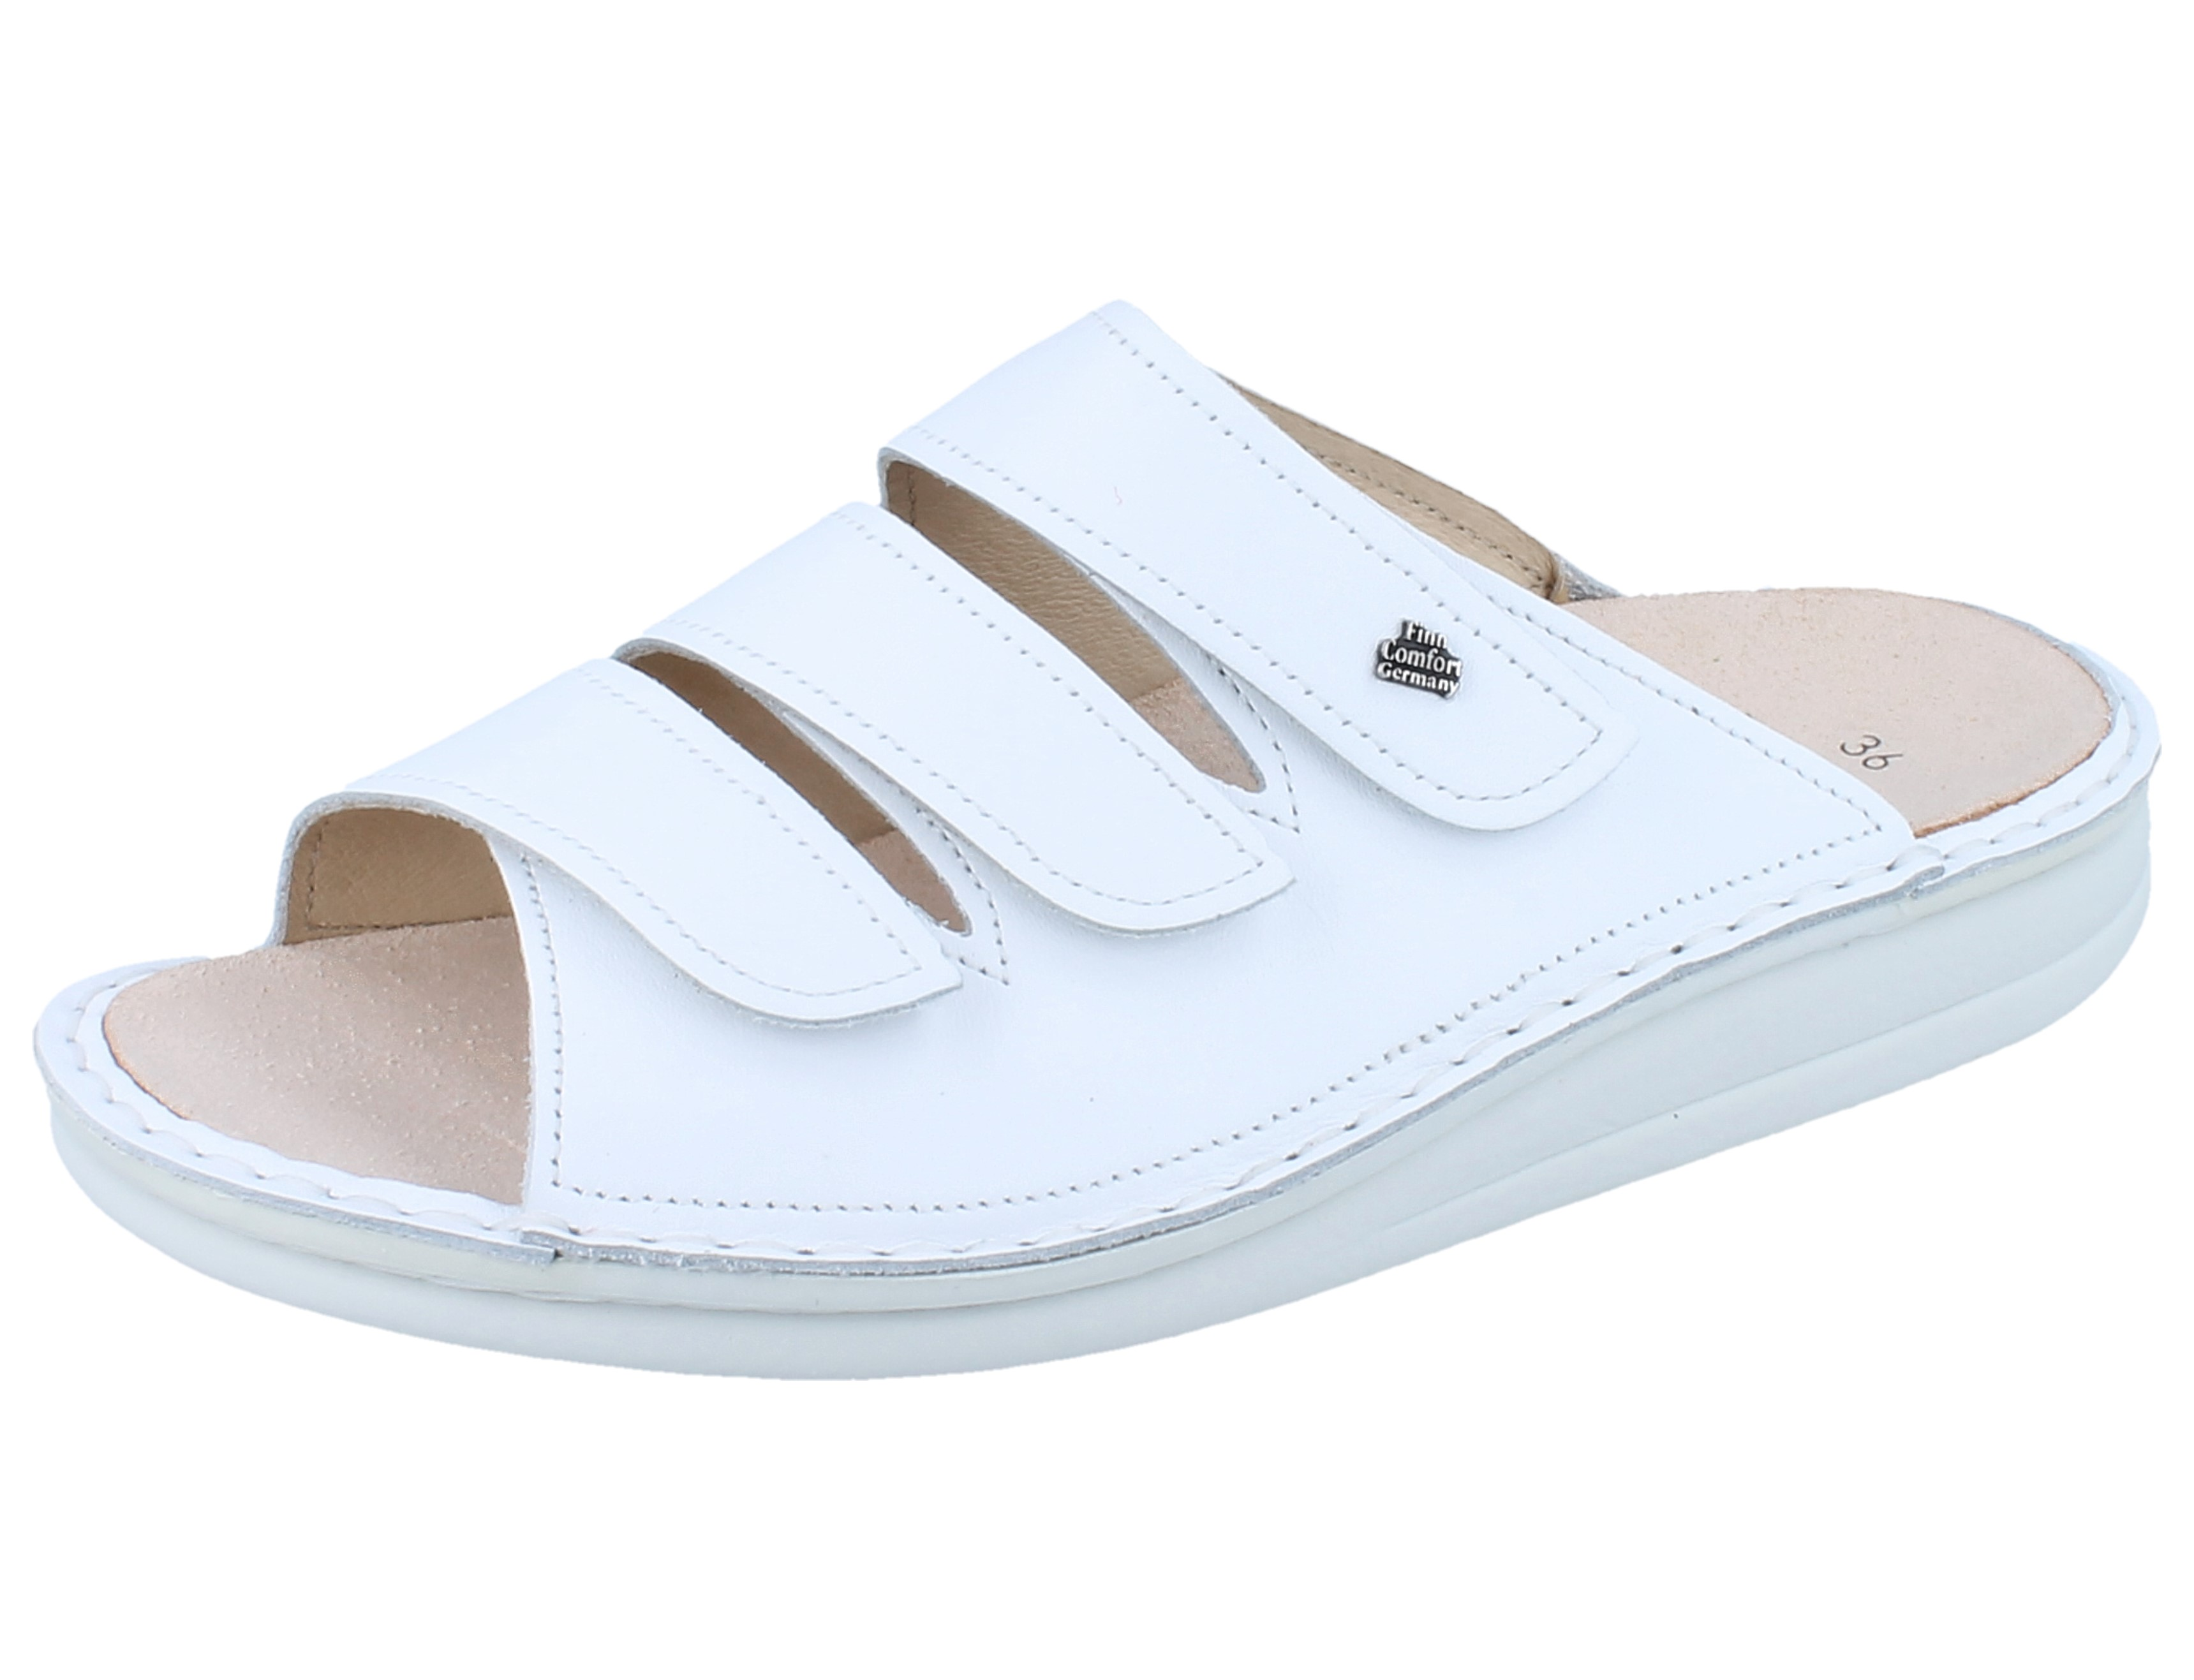 sale uk new collection nice shoes FINN COMFORT Korfu weiss/Nappa